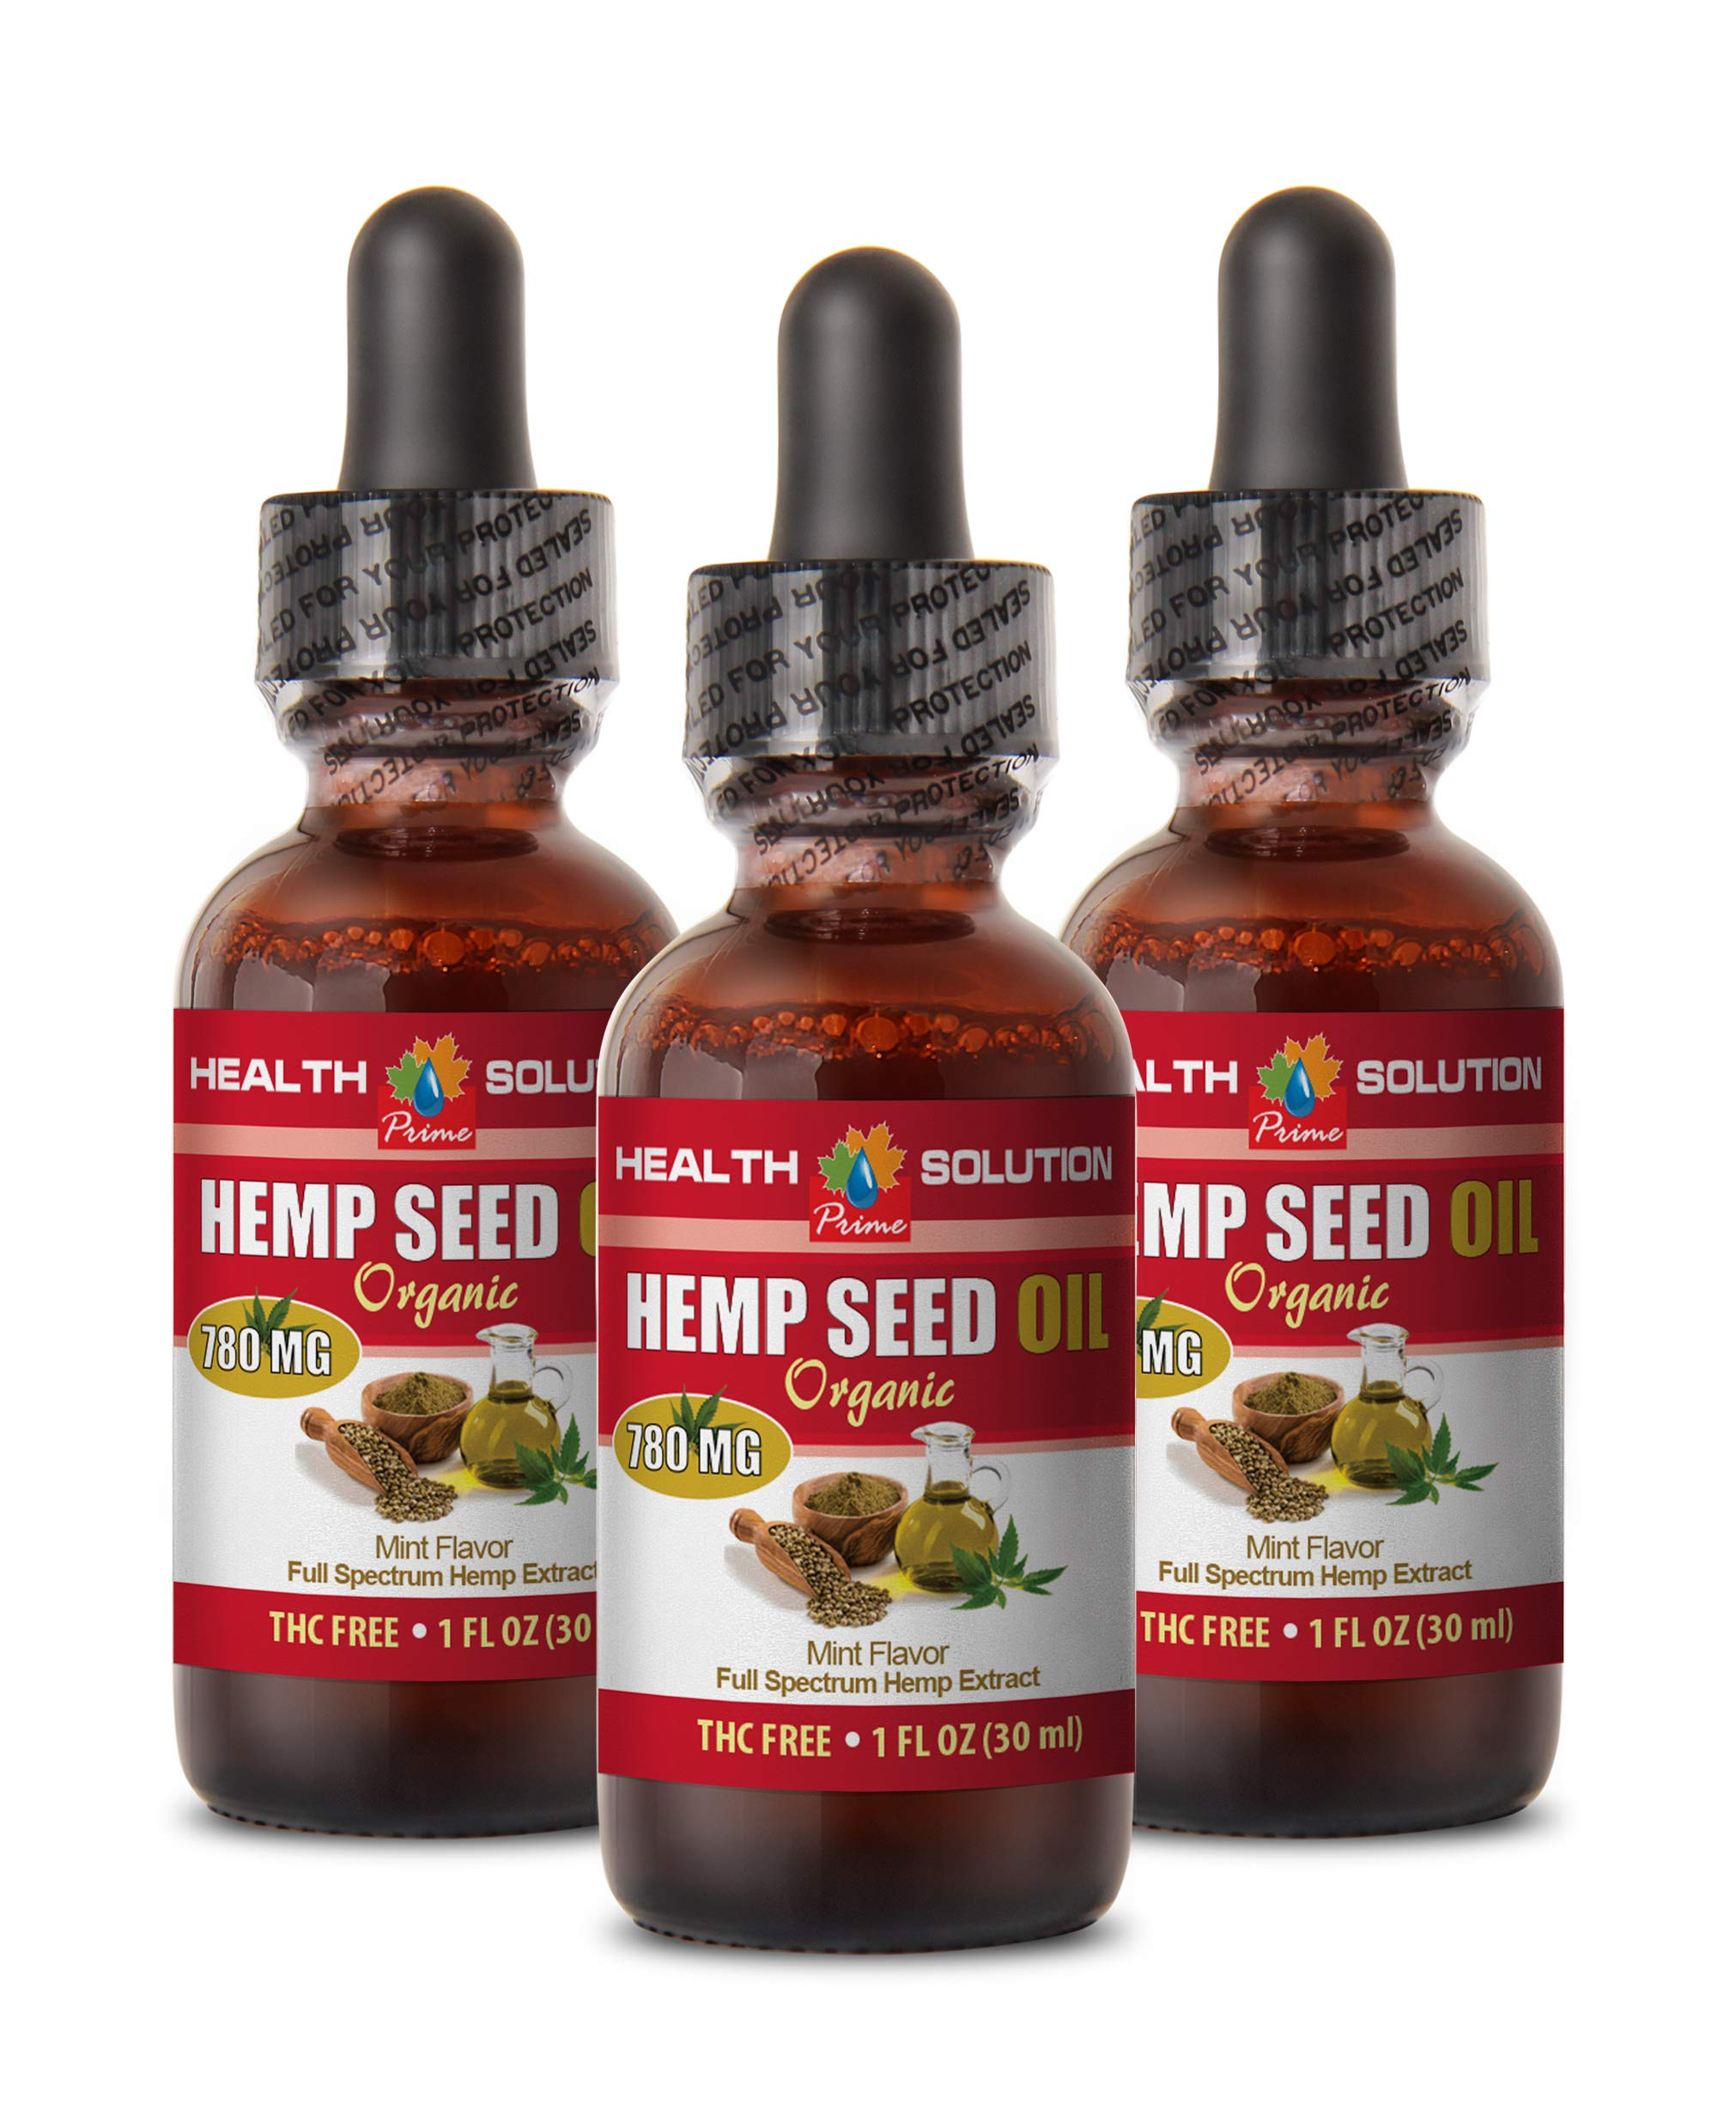 Anti Anxiety Hemp Oil - Hemp Seed Oil Organic 780 MG Drops - Hemp Oil for Muscle Pain - 3 Bottles 3 FL OZ (90 ML) by Health Solution Prime